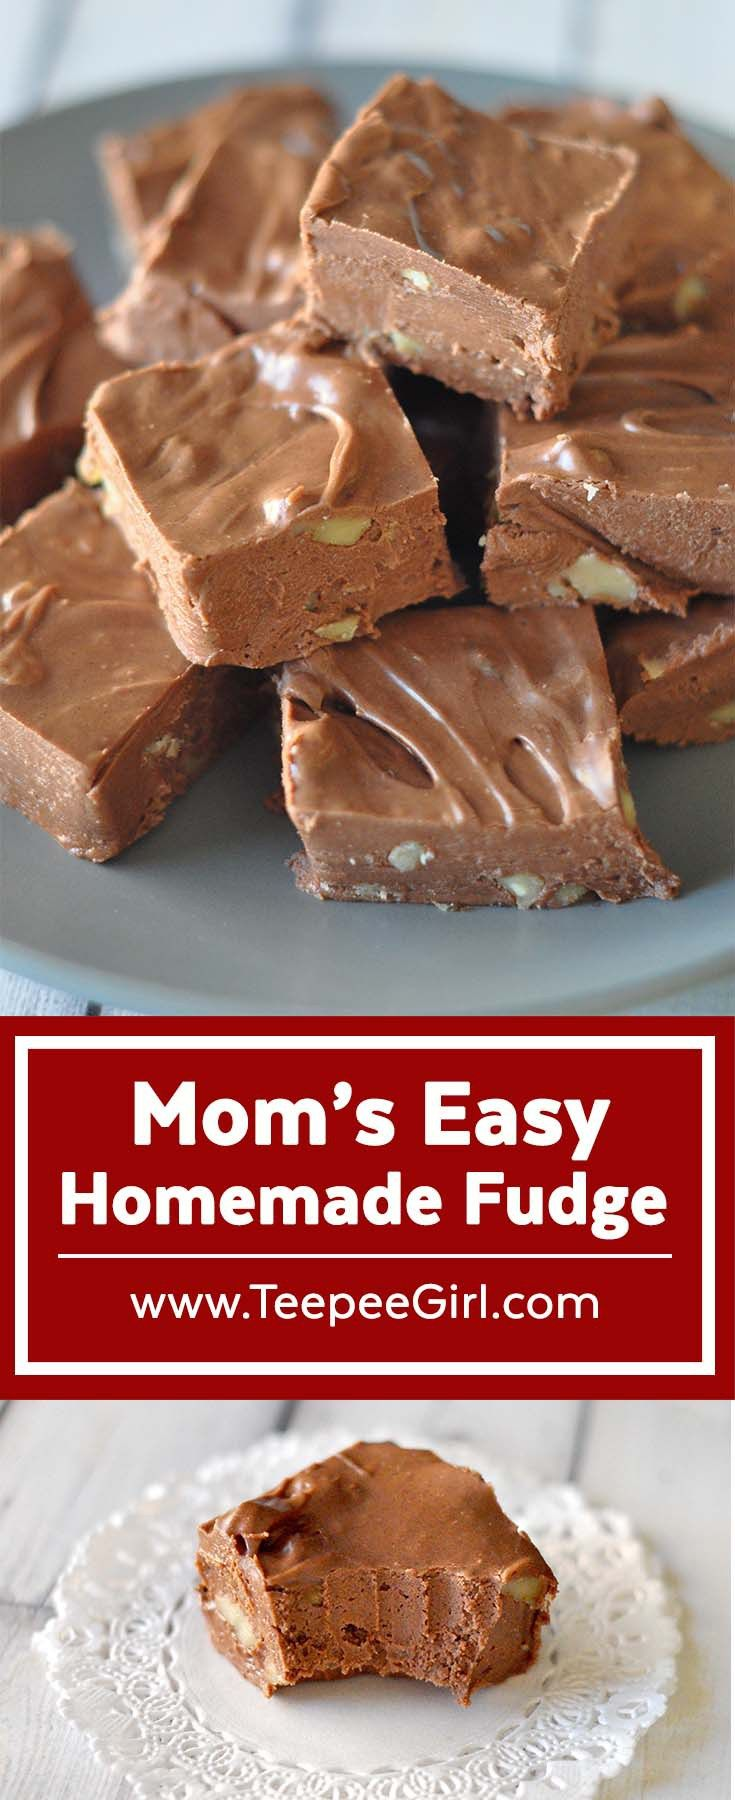 My mom has been making this fudge for as long as I can remember. It's creamy, decadent, and best of all, it's easy! Get the recipe at www.TeepeeGirl.com.